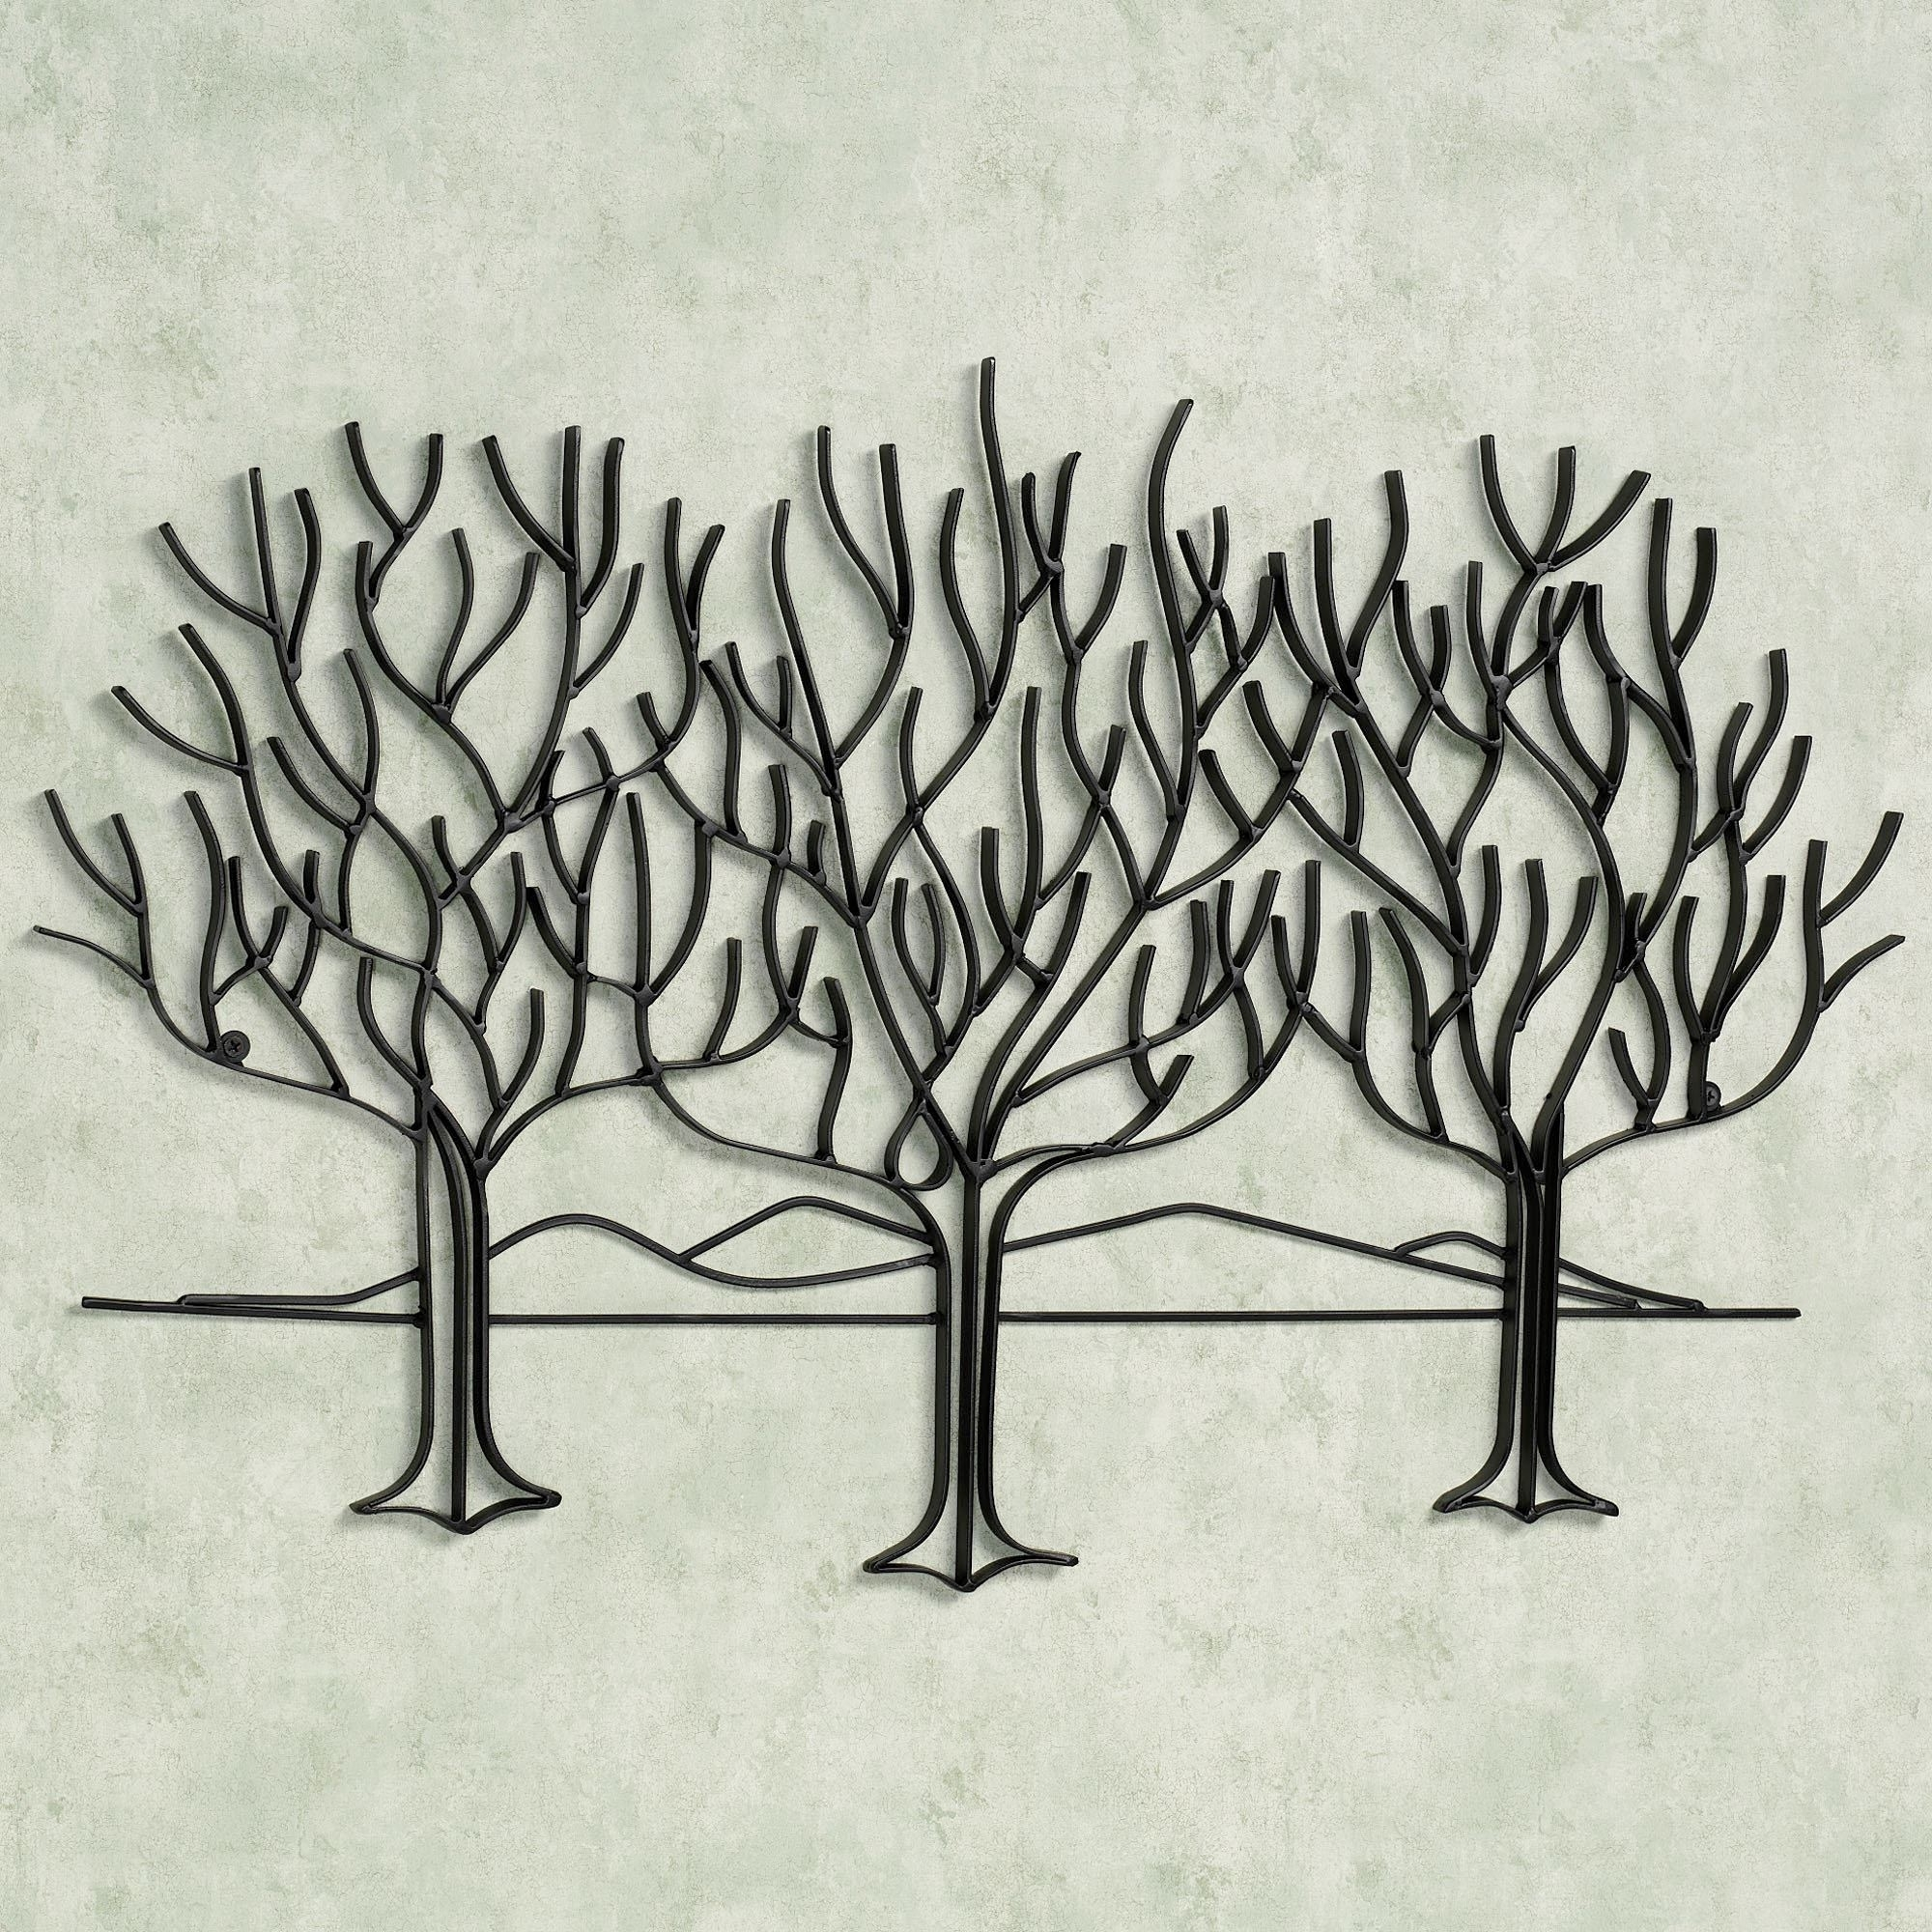 Wall Art Designs: Metal Wall Art Trees Black Metal Wall Art Olive For Latest Metal Wall Art Trees And Branches (View 10 of 15)